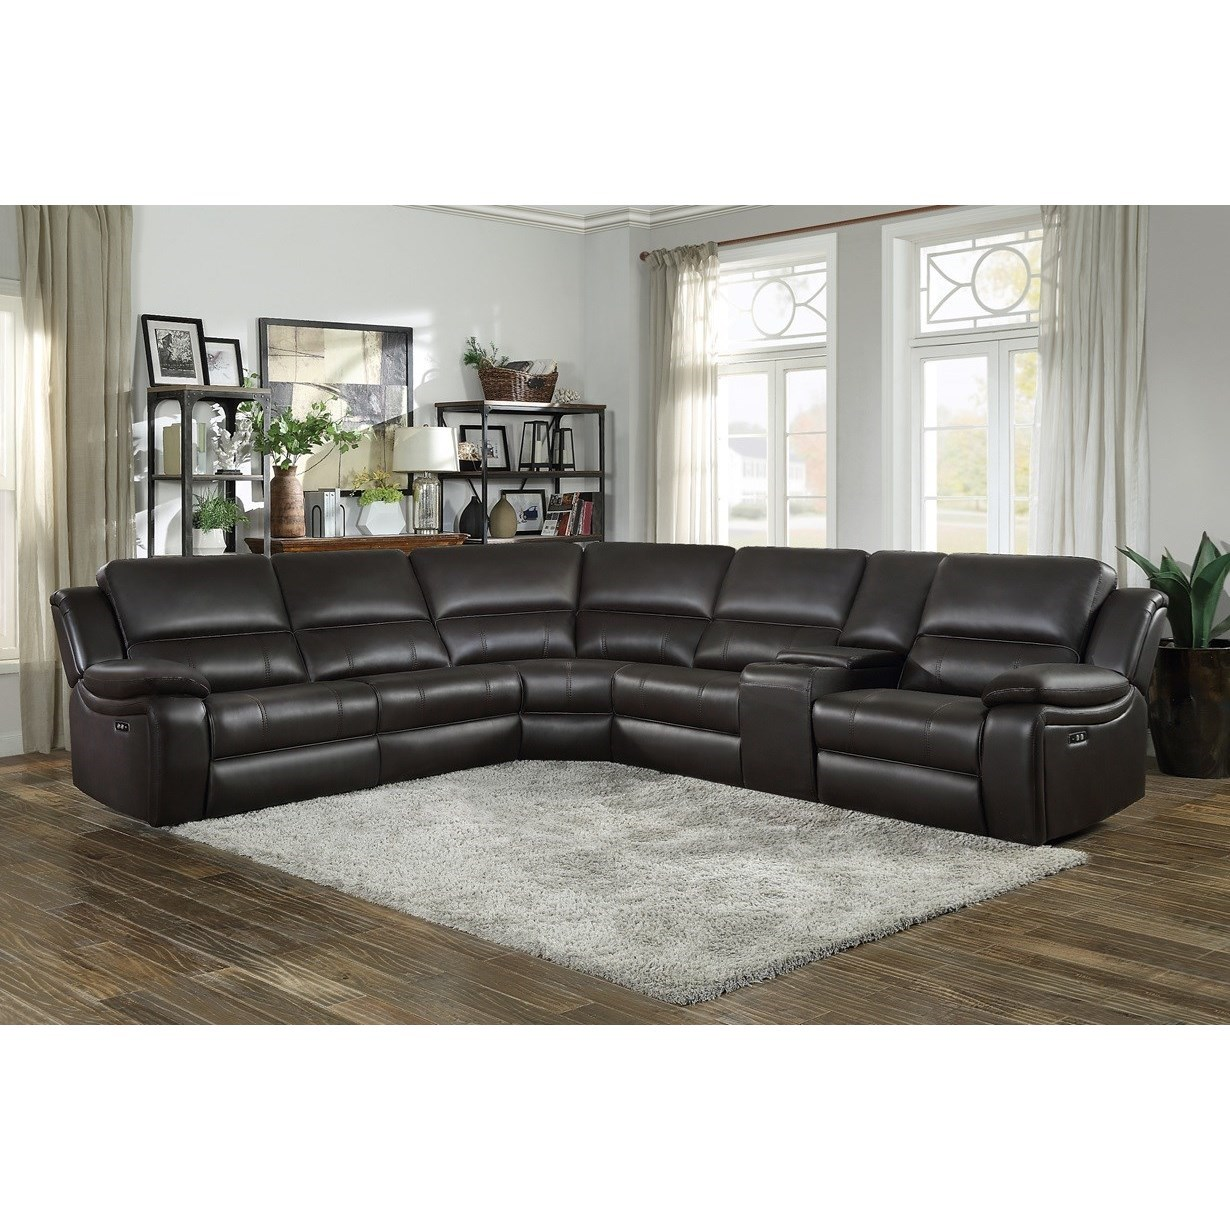 Homelegance Falun Casual 6 Piece Sectional With Power